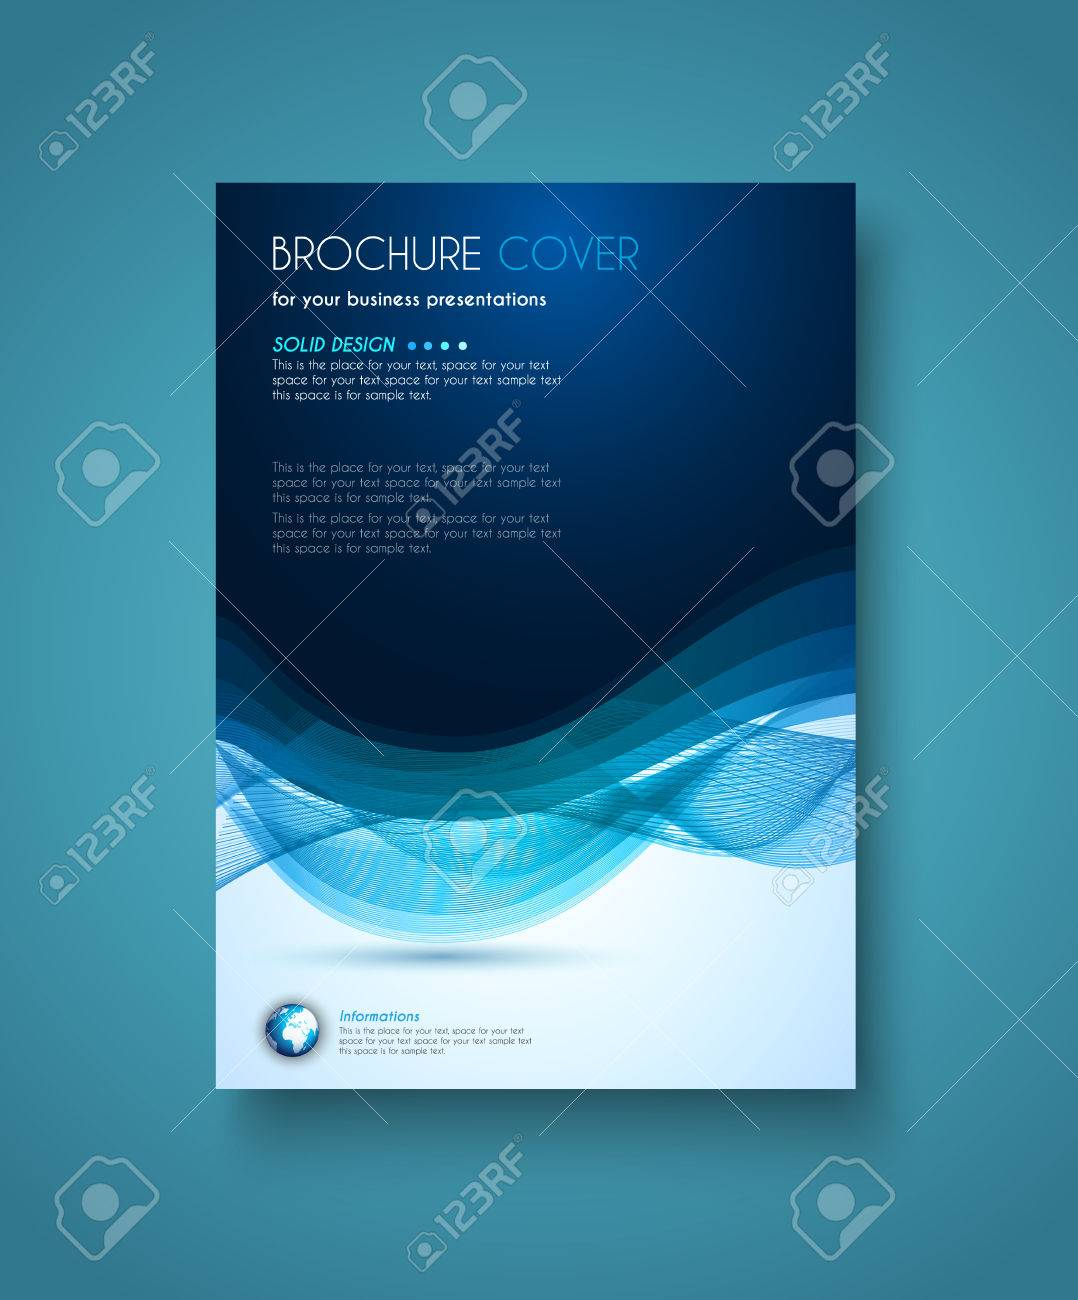 brochure template, flyer design and depliant cover for business, Presentation templates